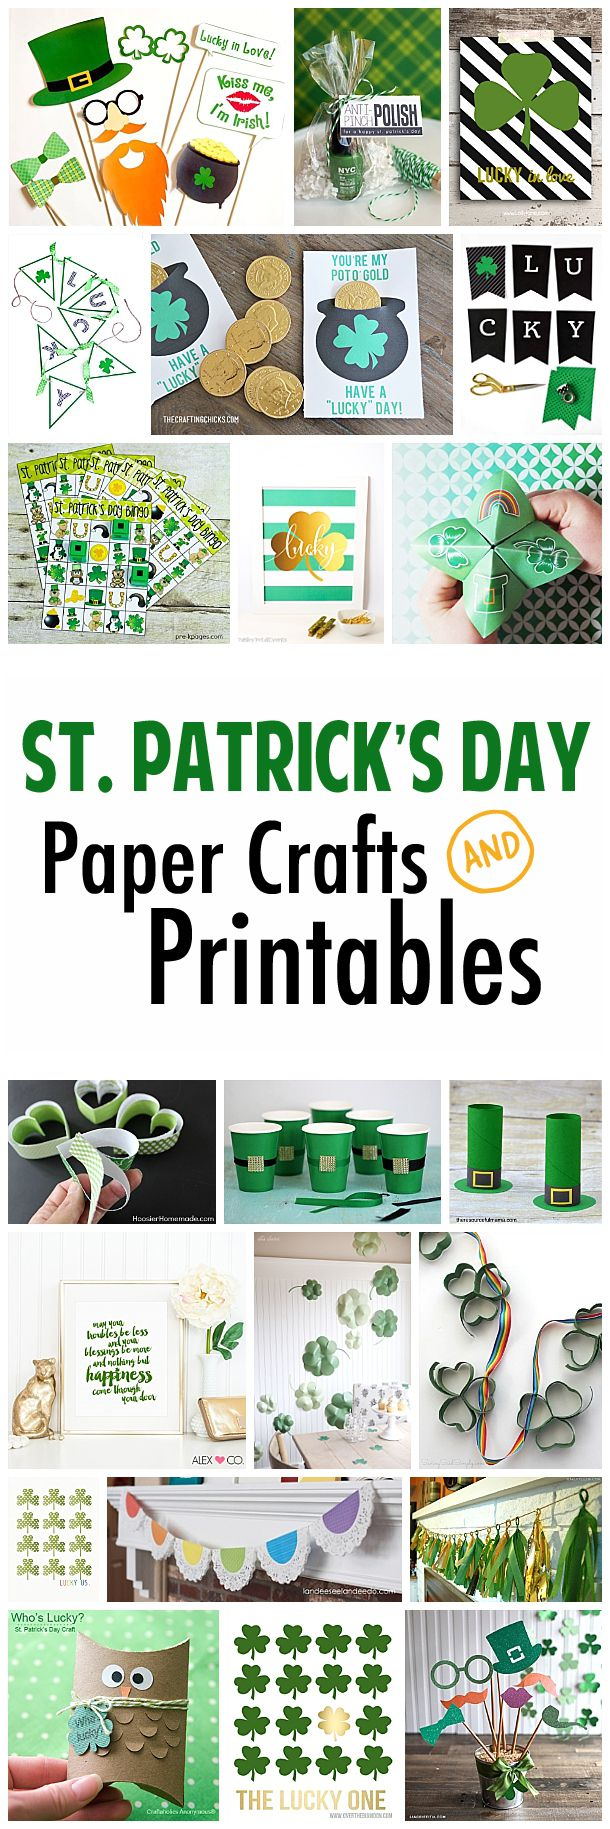 Fun printables and paper crafts to celebrate St. Patrick's Day!